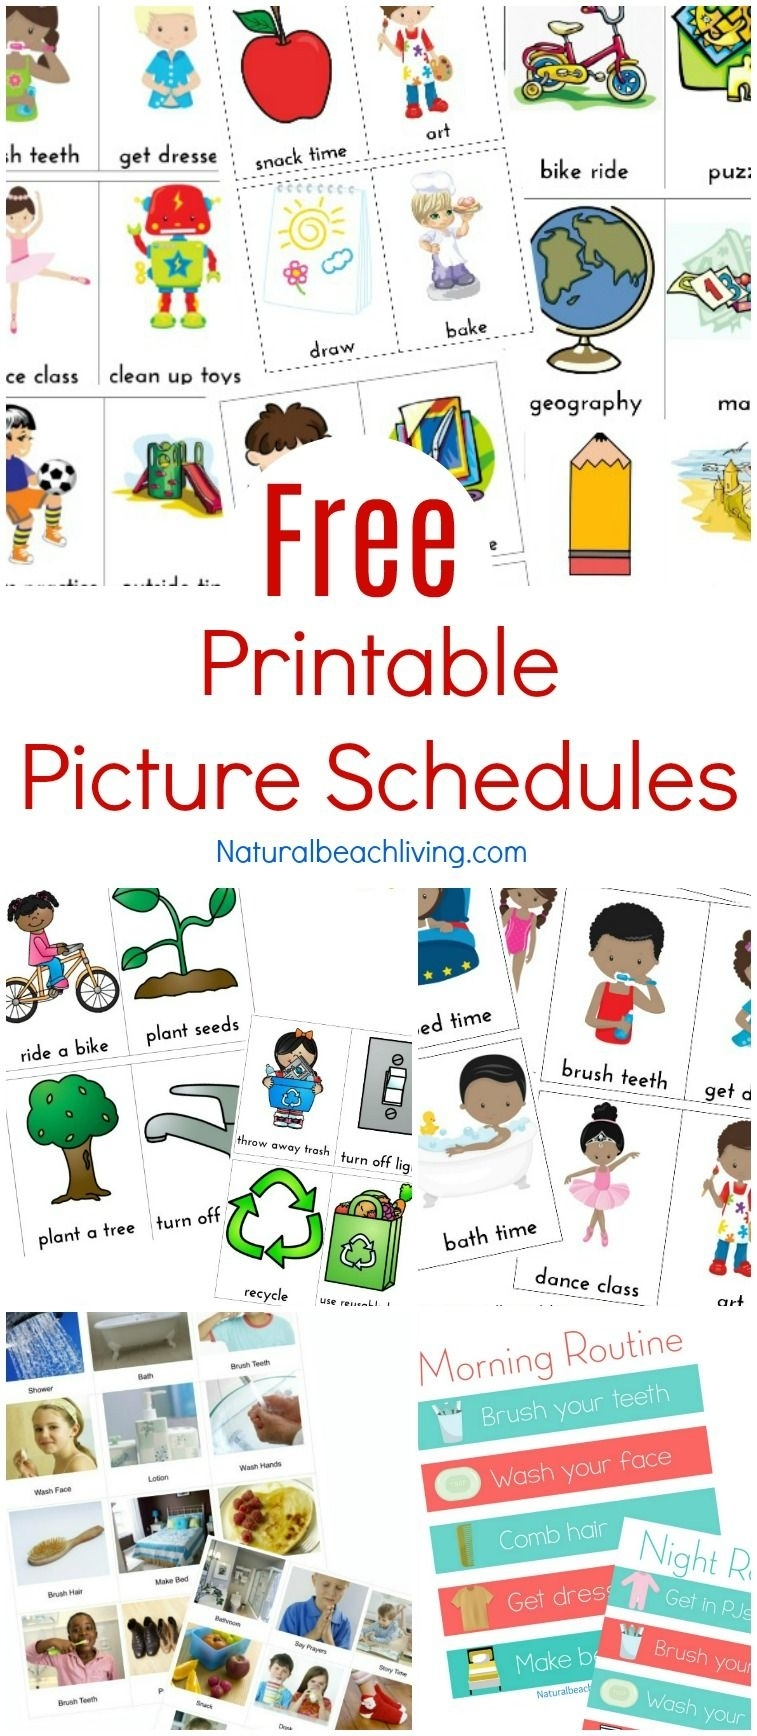 Free Printable Picture Schedule Cards - Visual Schedule